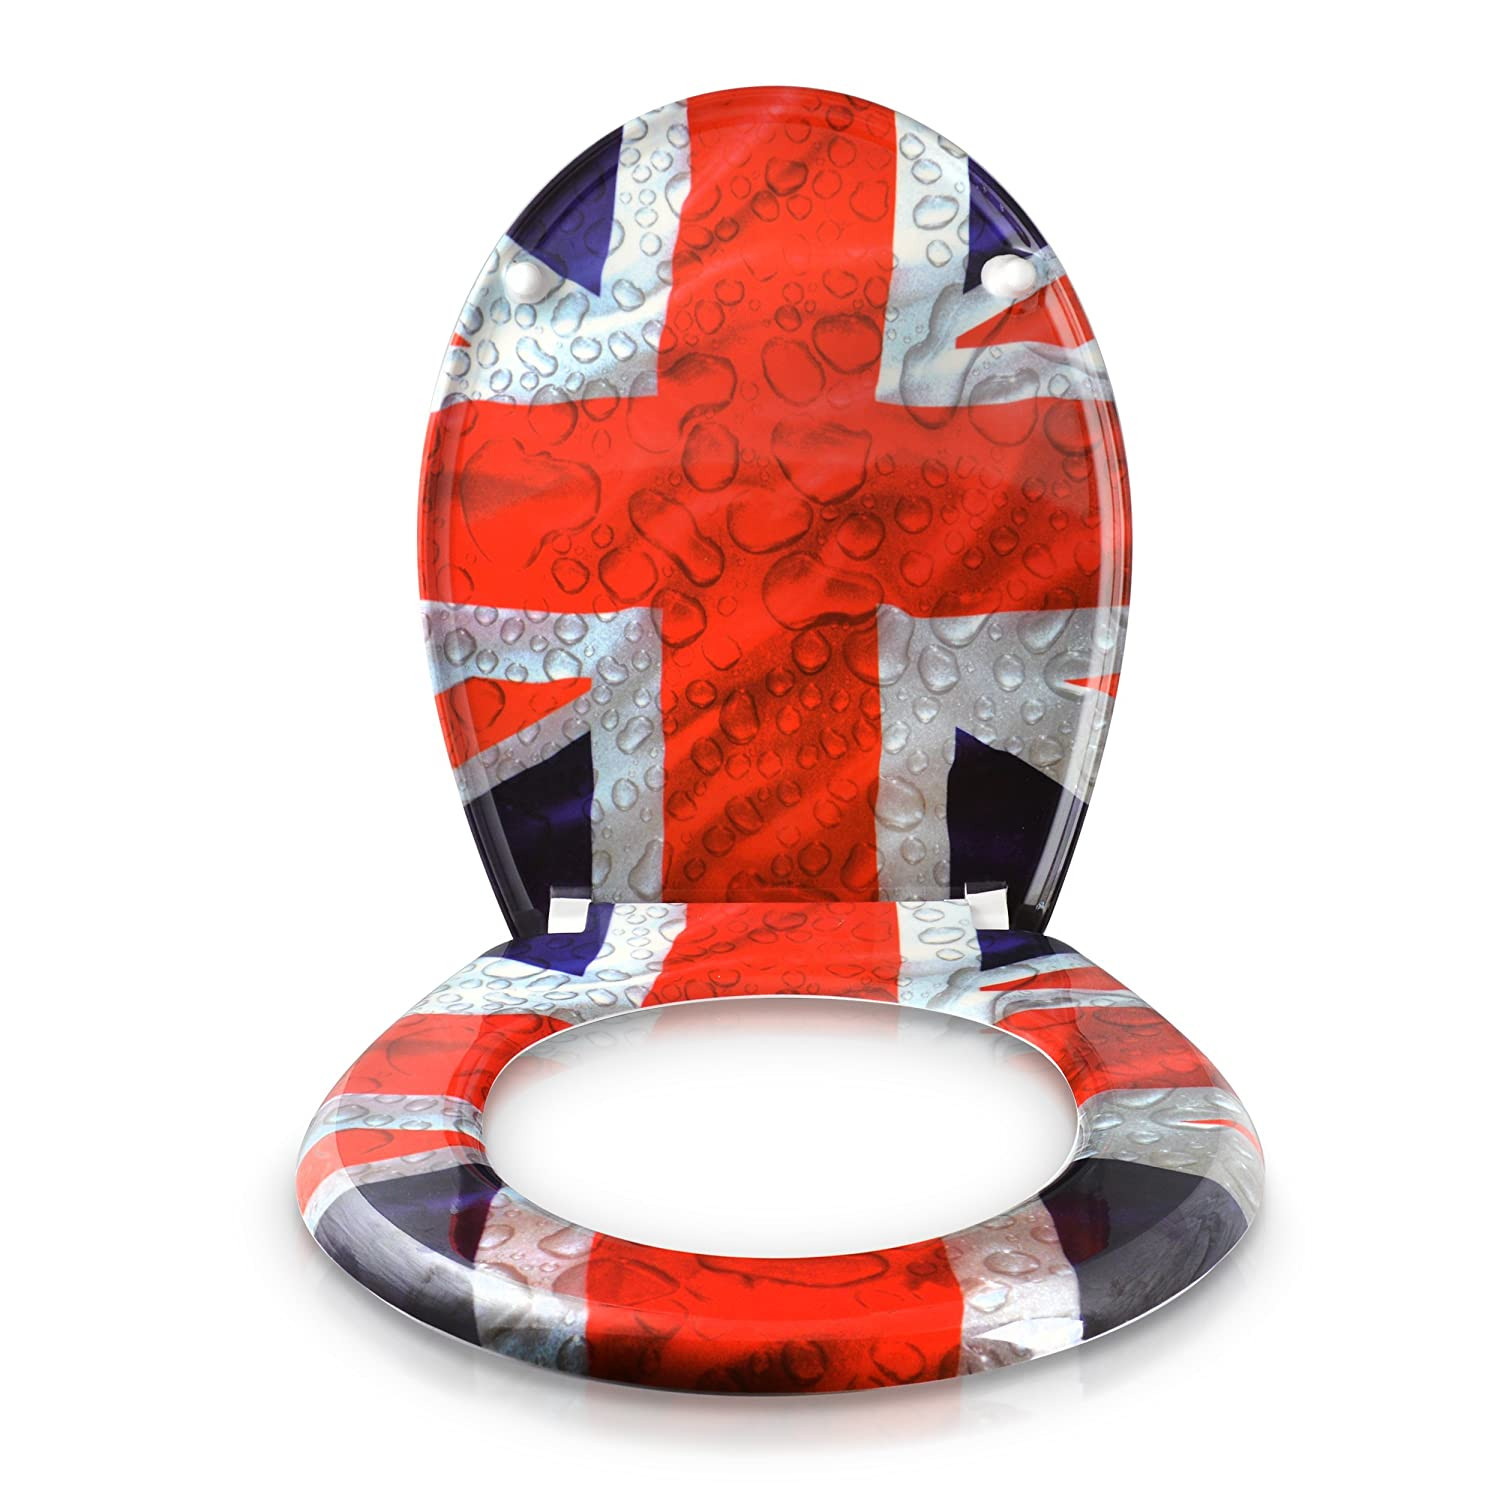 union jack toilet seat. WC Seat with Slow Close Mechanism  Union Jack Design Duroplast Toilet Motif and Mounting Kit Grinscard Amazon co uk Kitchen Home